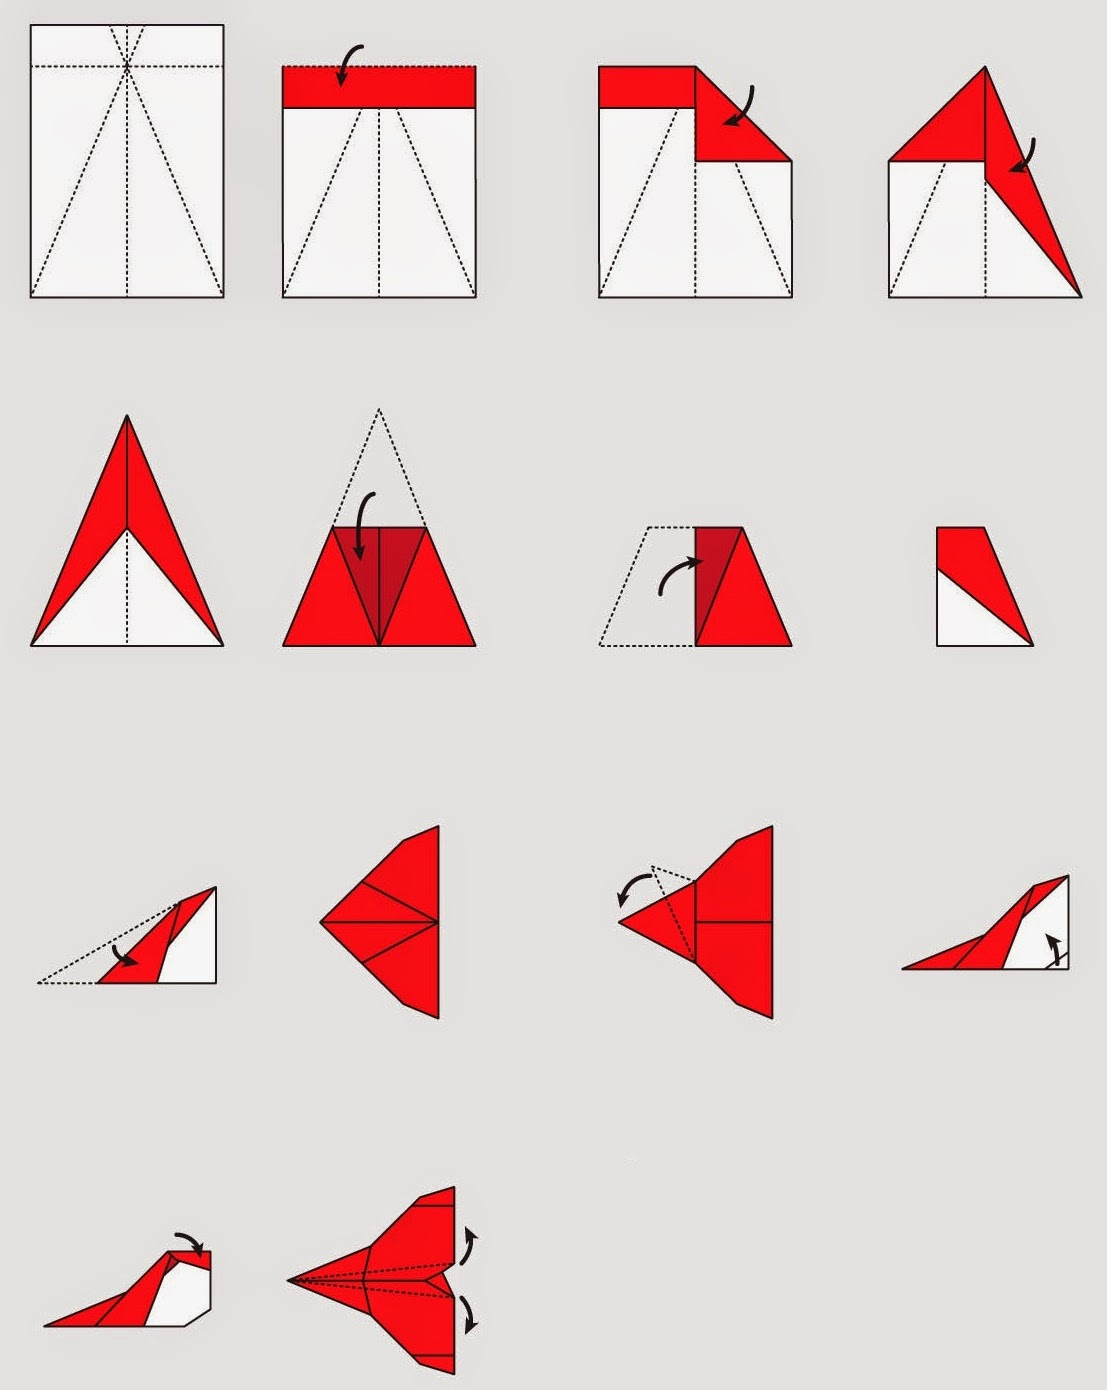 How To Make Origami Planes Step By